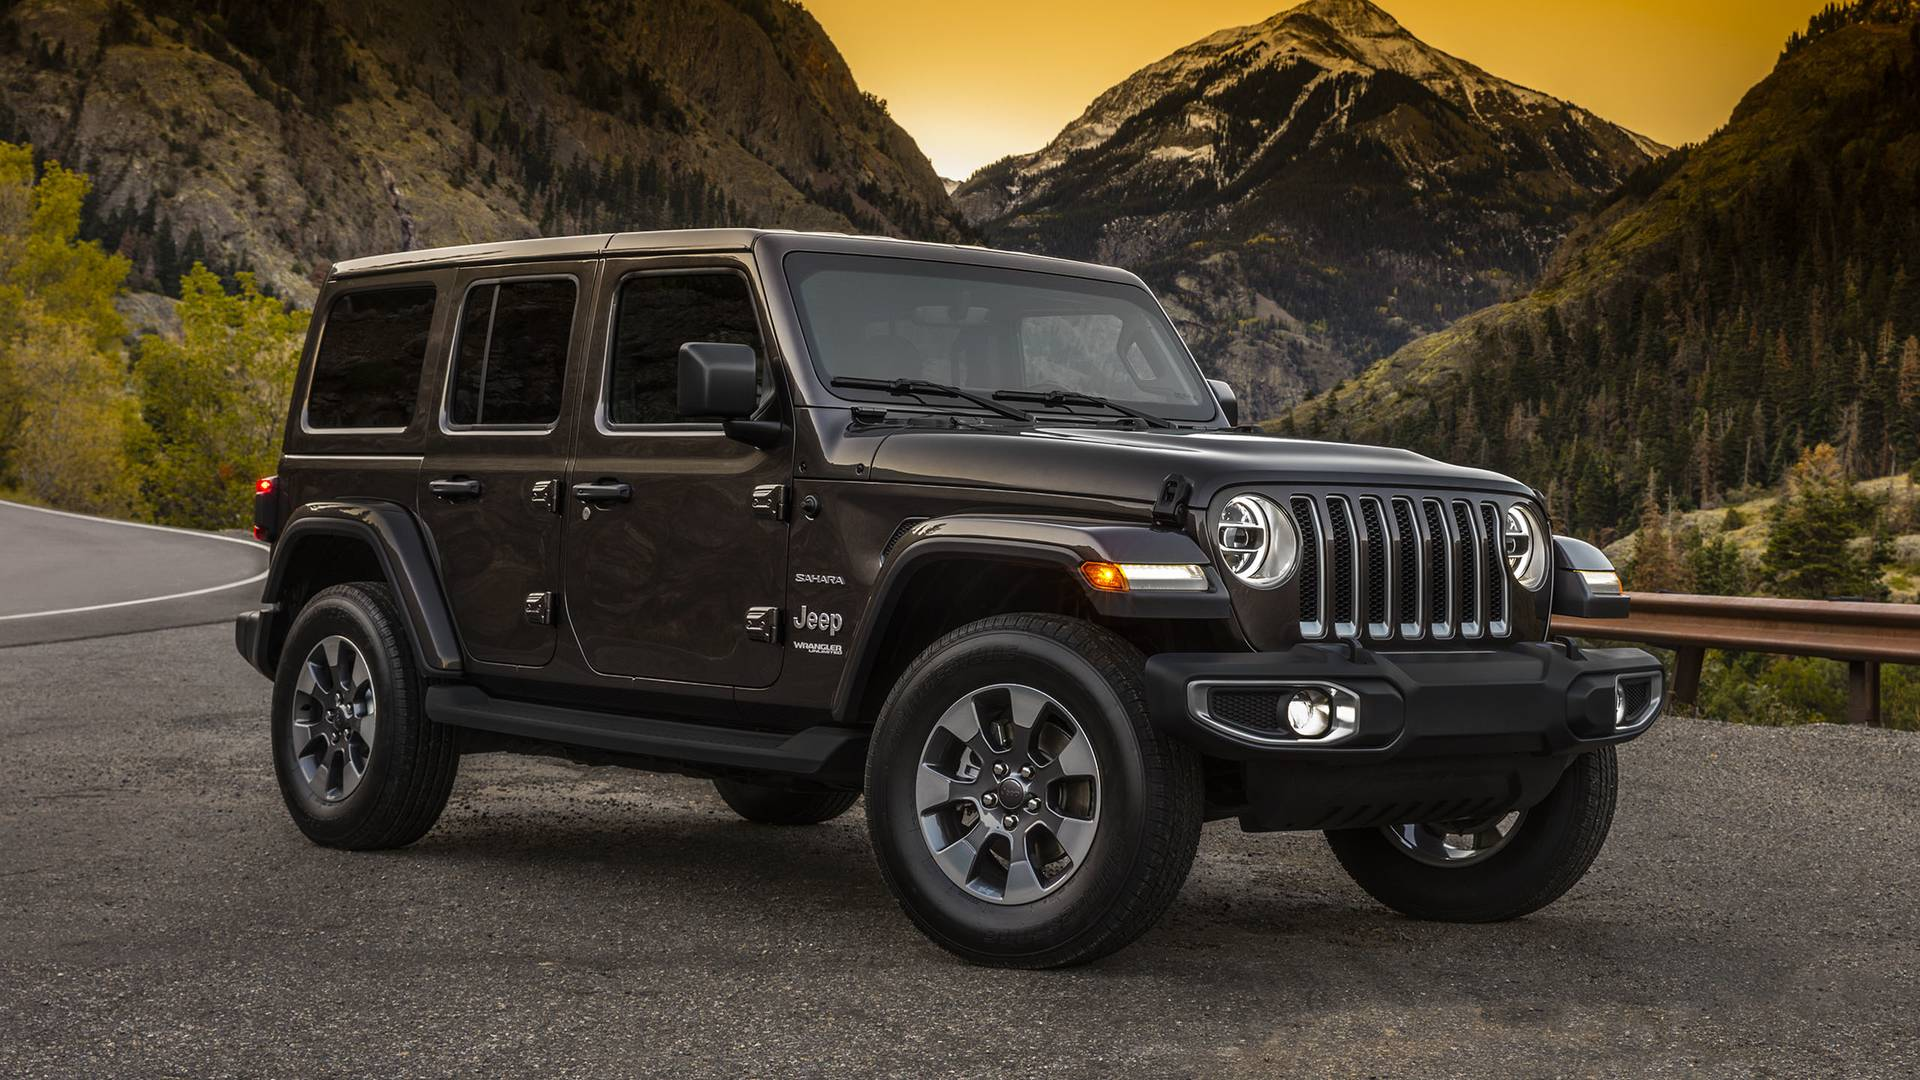 2018 Jeep Wrangler 2 0L Turbo Will Get Up To 25 MPG